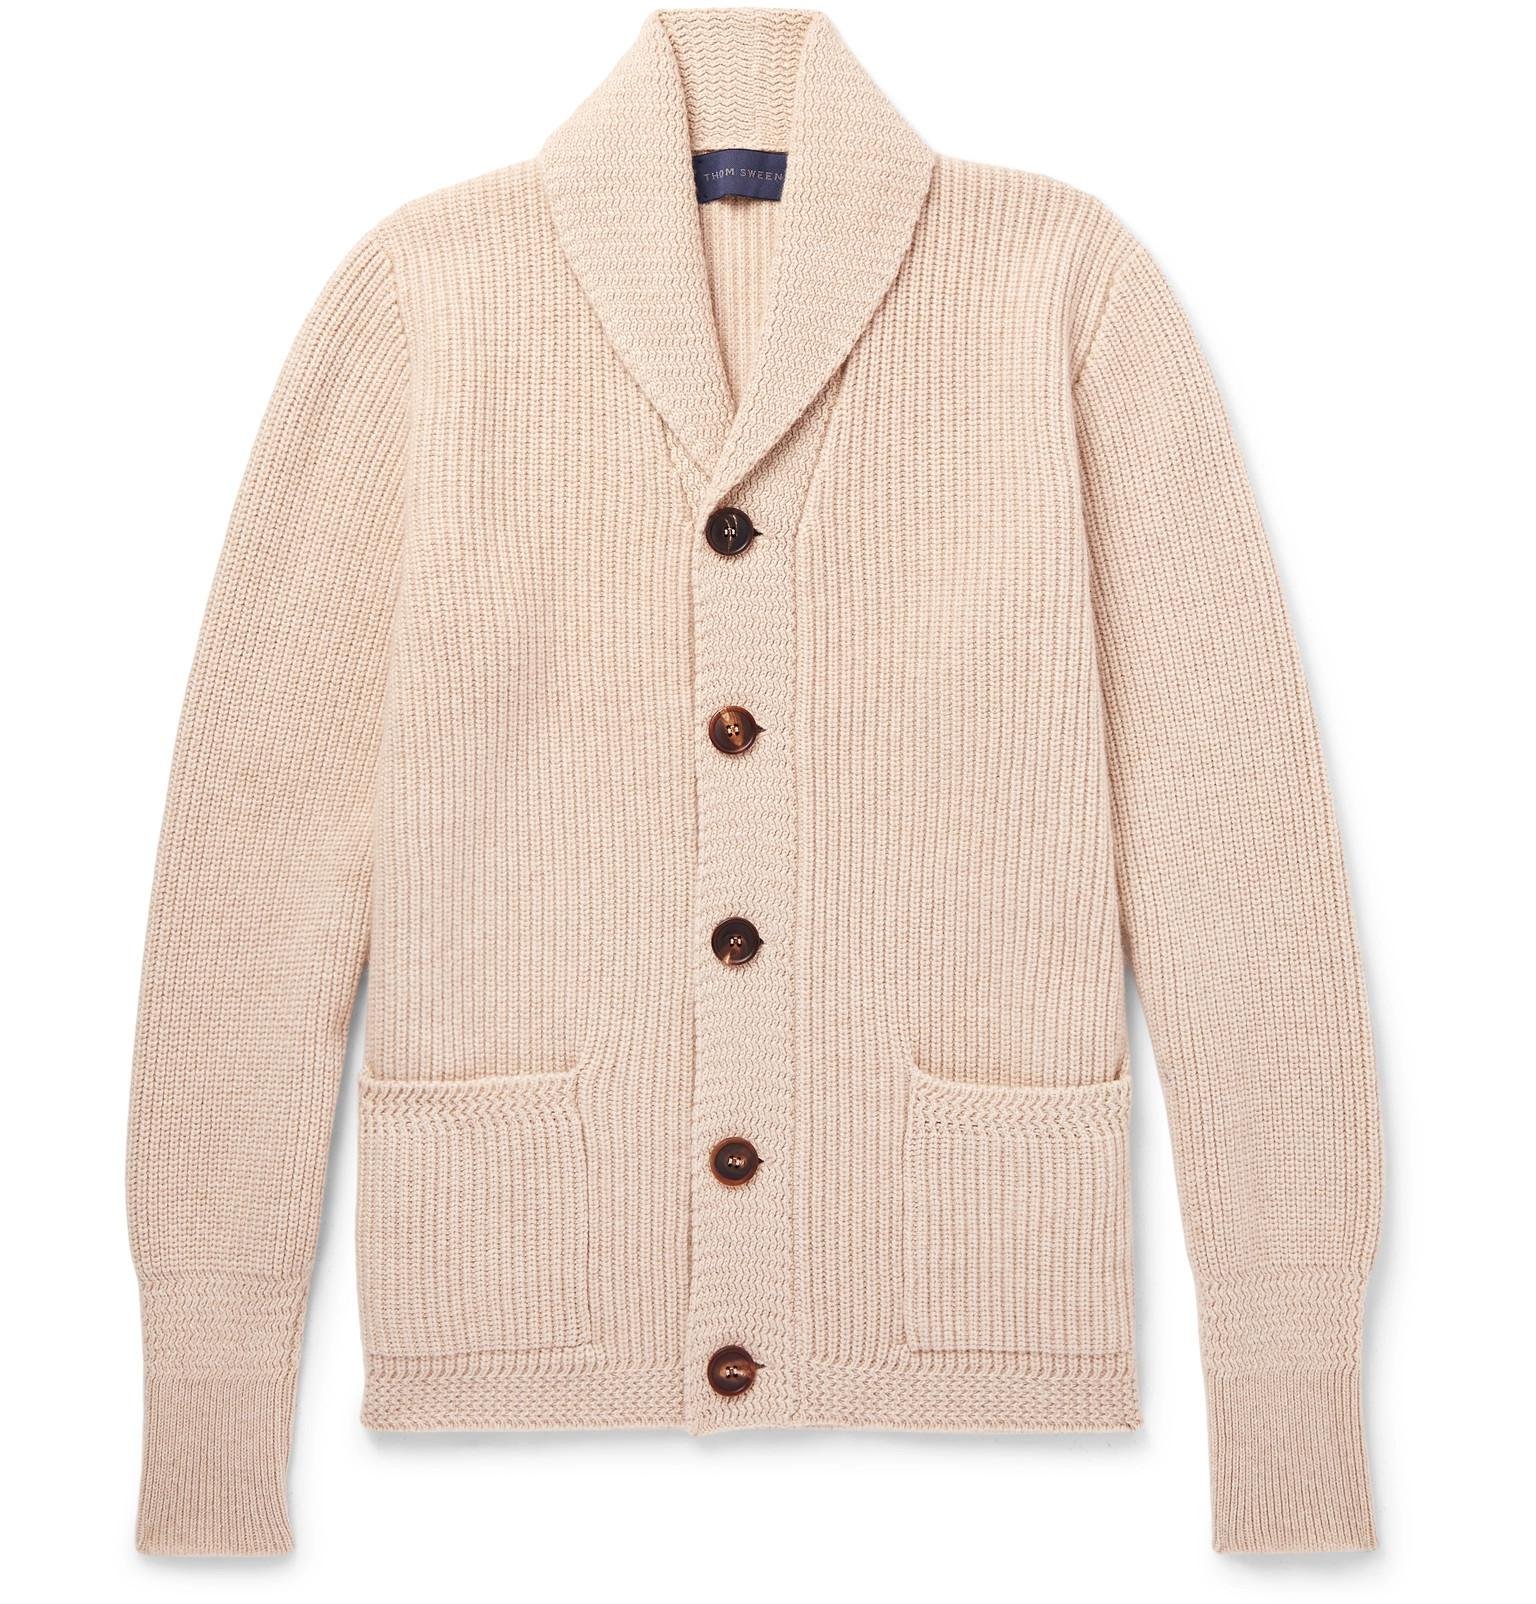 93a3a9916685a Thom Sweeney Slim-fit Shawl-collar Cashmere Cardigan in Natural for ...